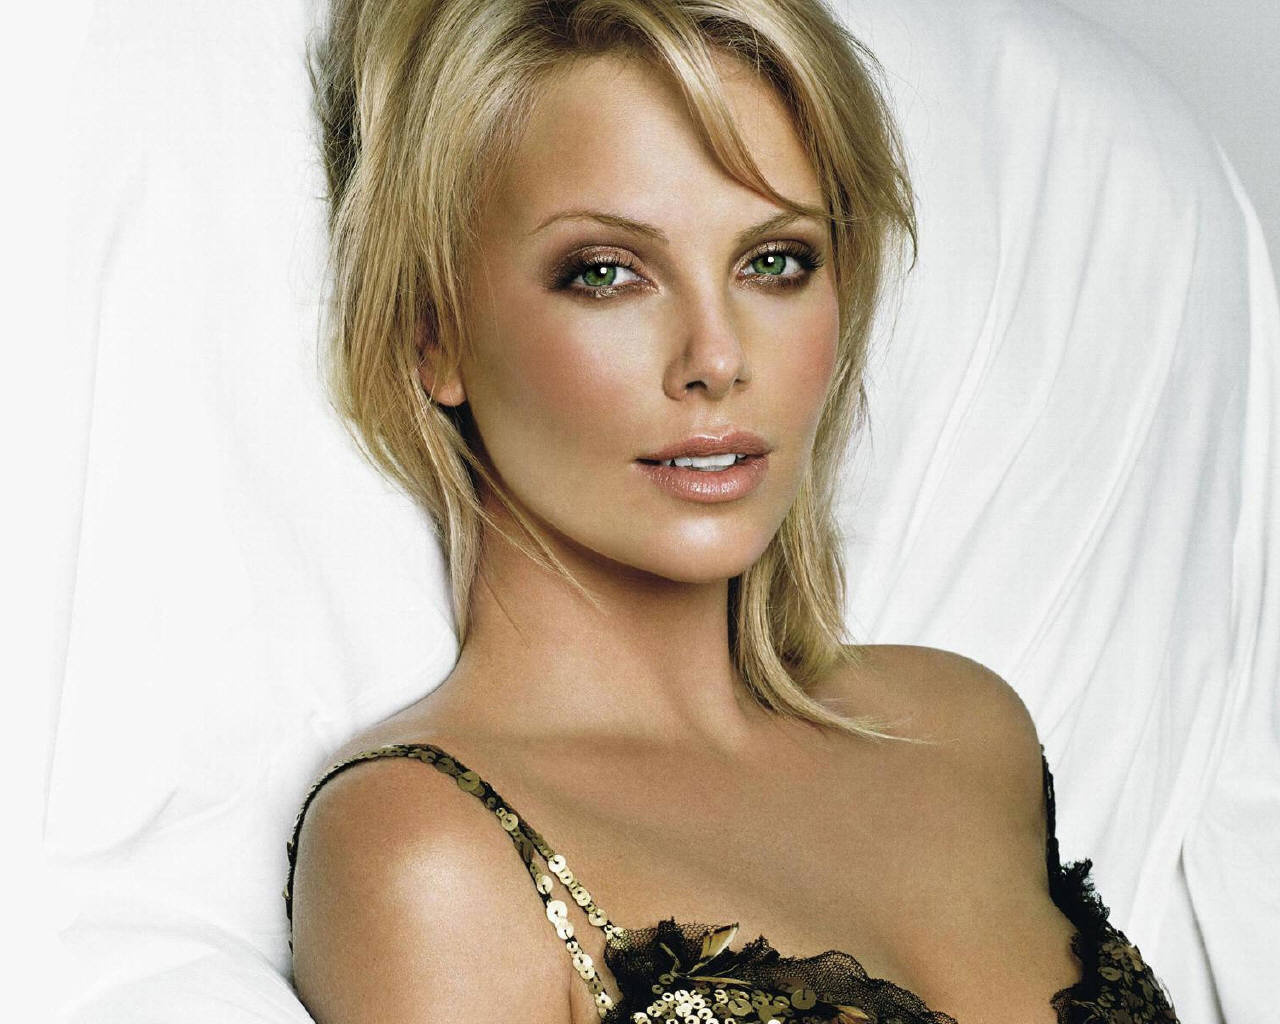 Charlize Theron - Charlize Theron Wallpaper (84169) - Fanpop Charlize Theron